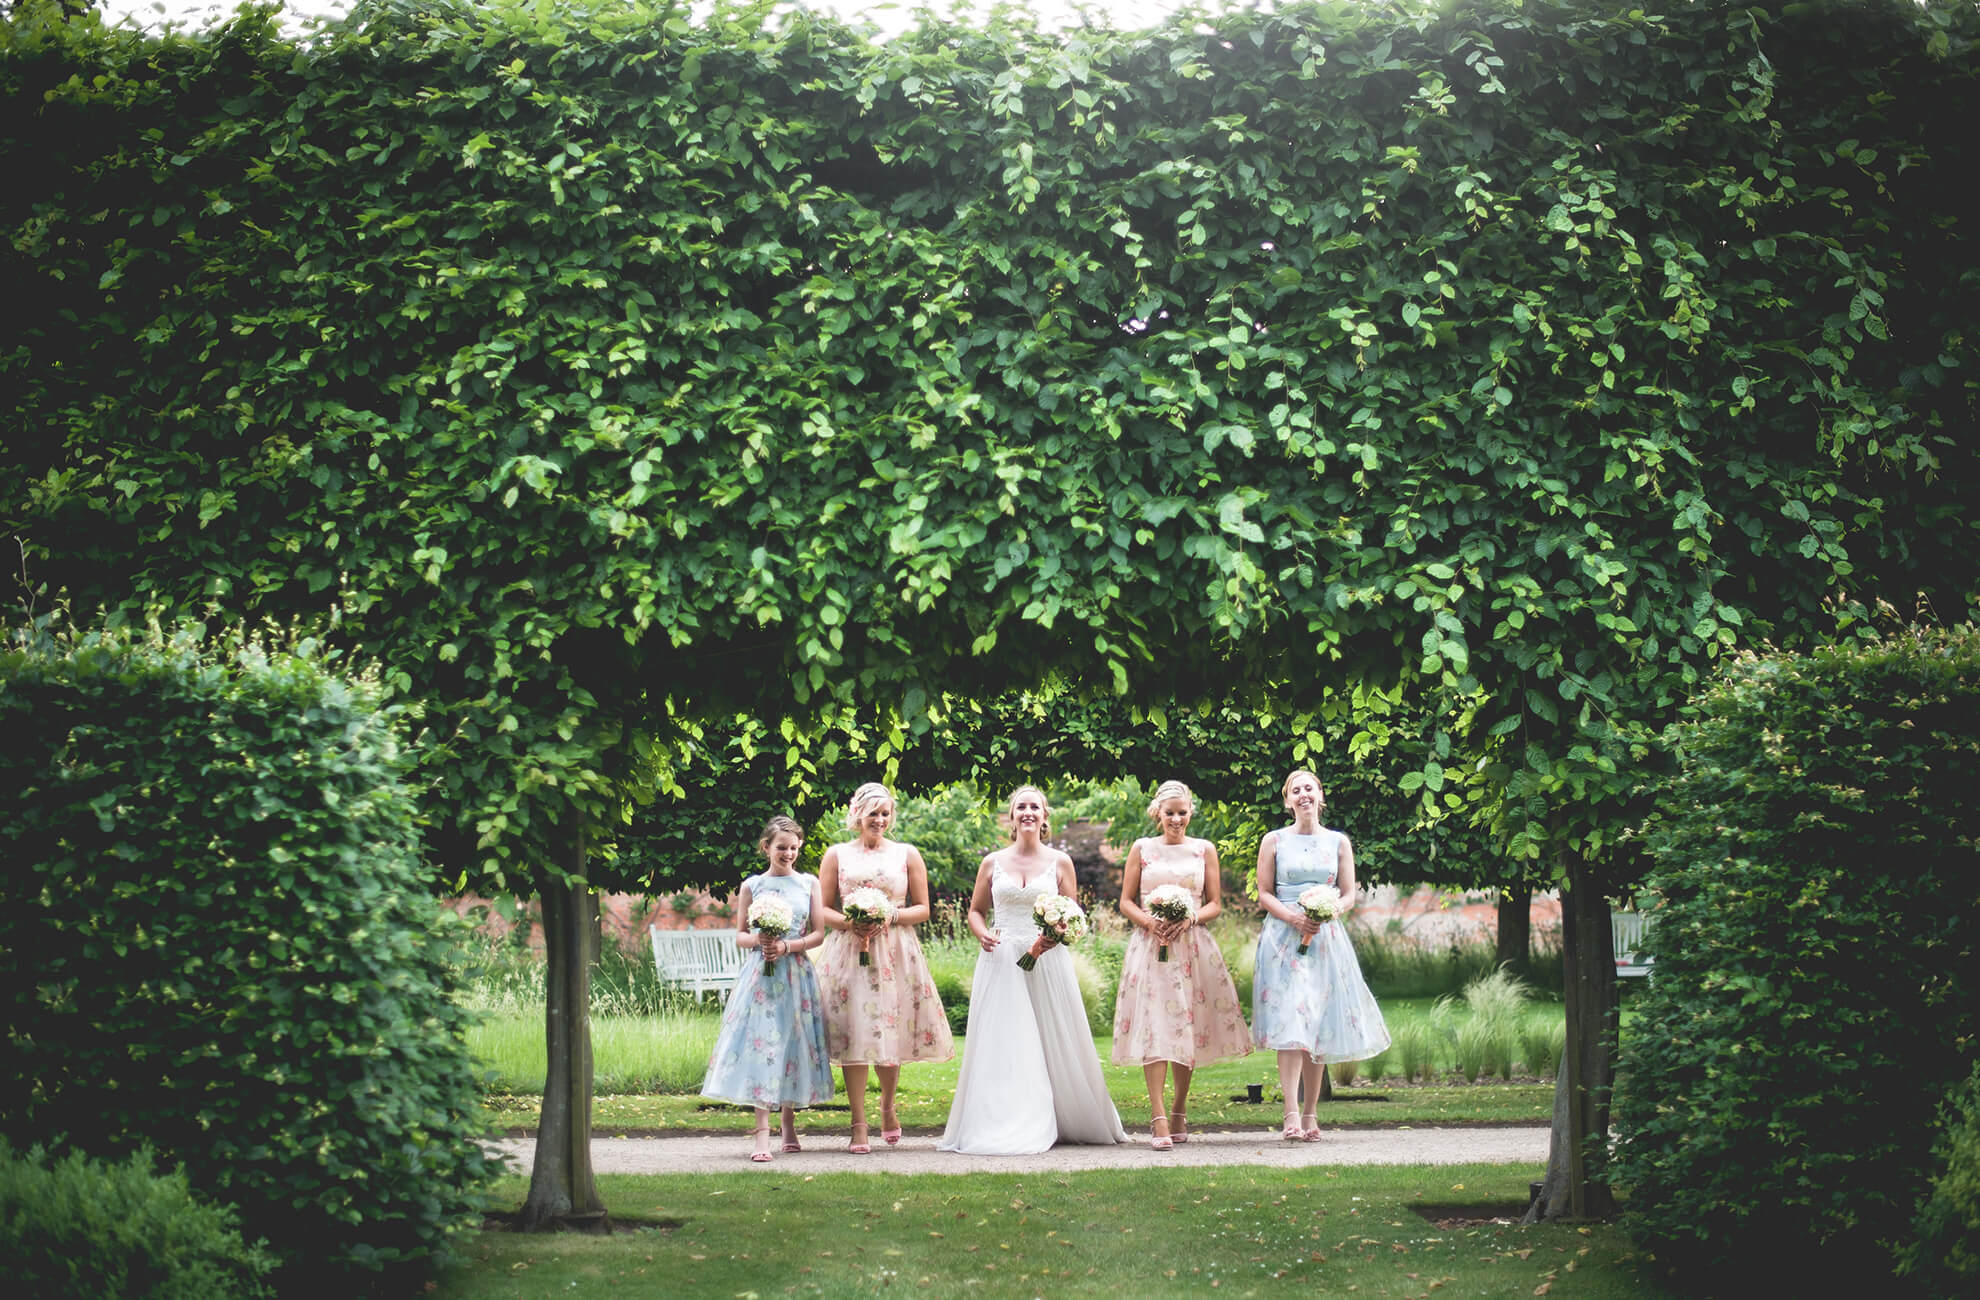 The bride and her bridesmaids pose for wedding photographs in the gardens at Combermere Abbey